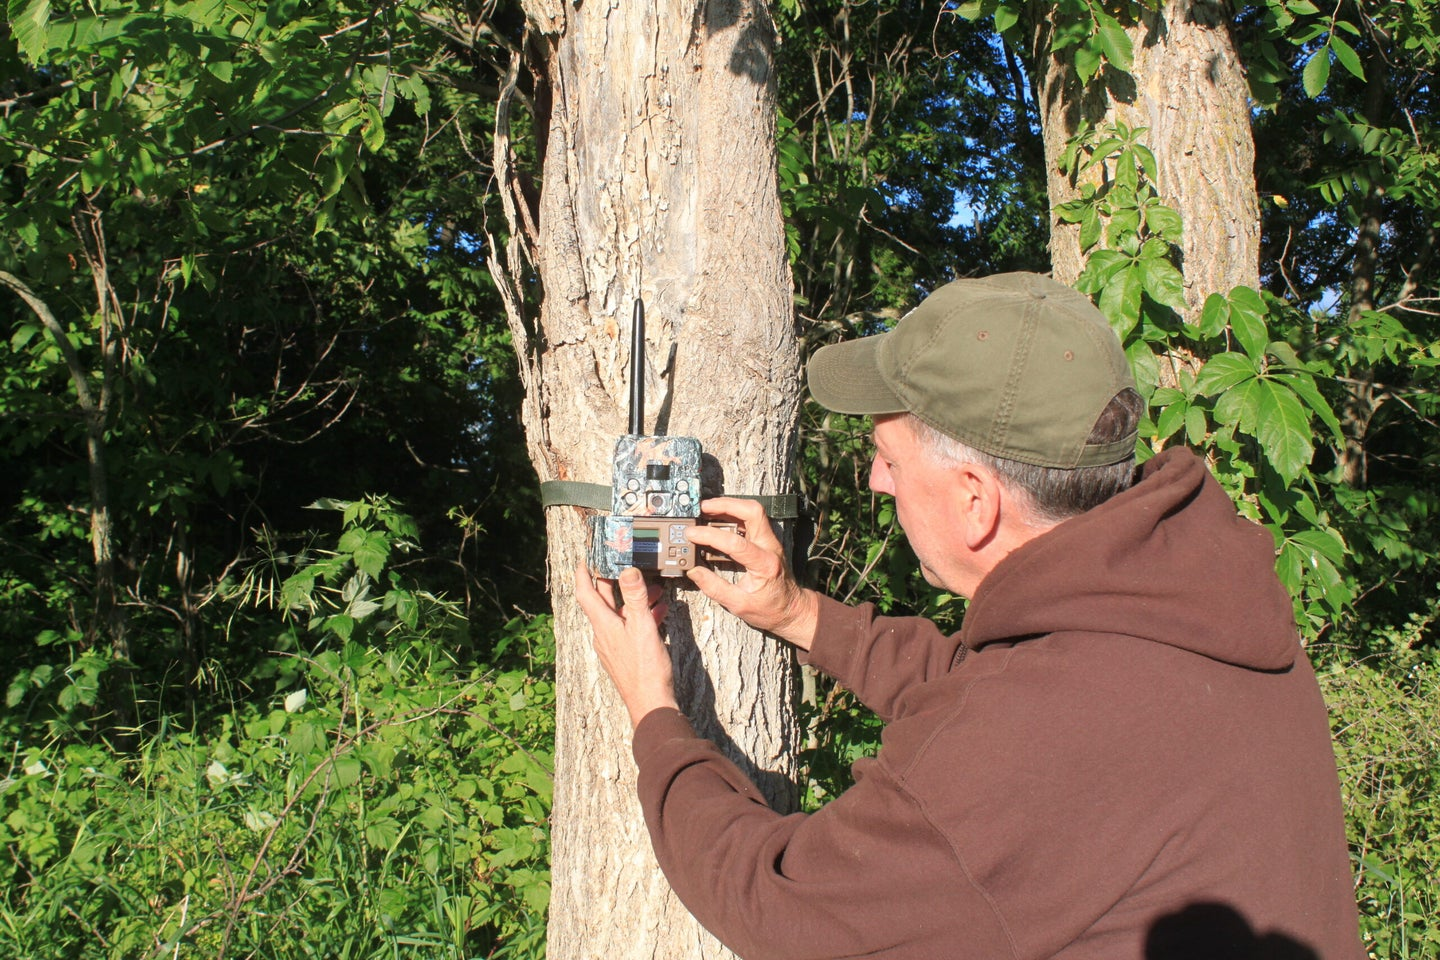 guy setting up trail cam